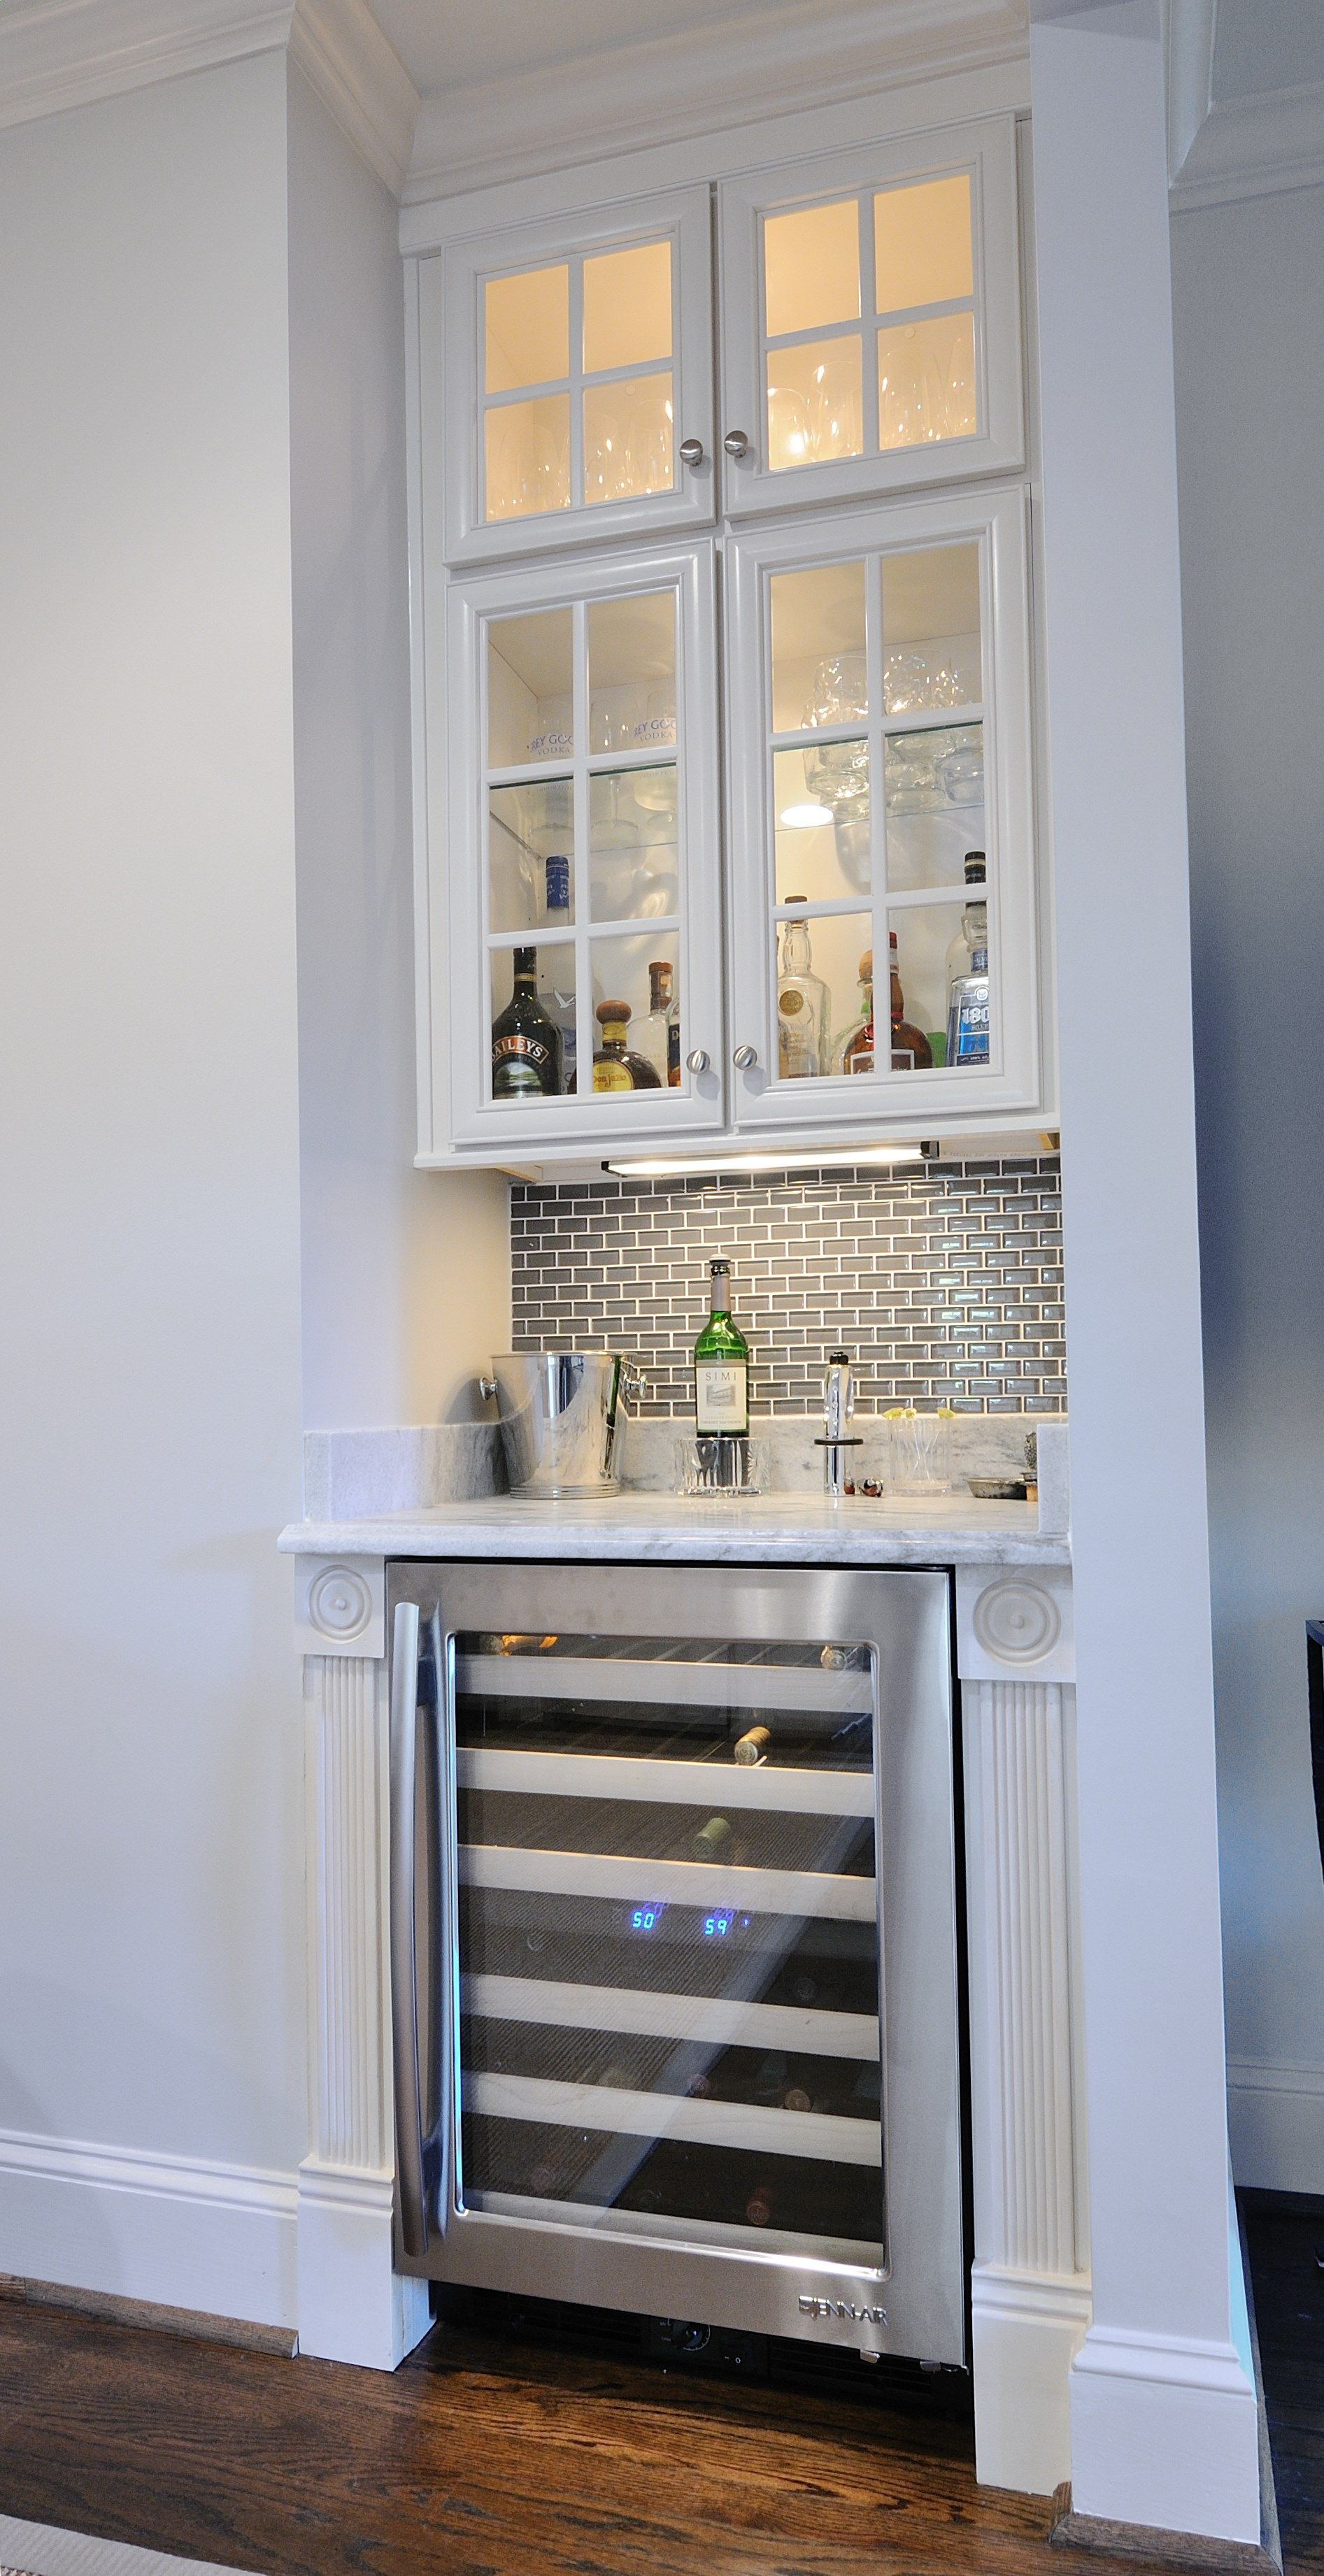 Wine Fridge - Pearl Gray Marble Wet Bar by Atlanta Kitchen, Tile Backsplash by Atlanta Marble Mfg